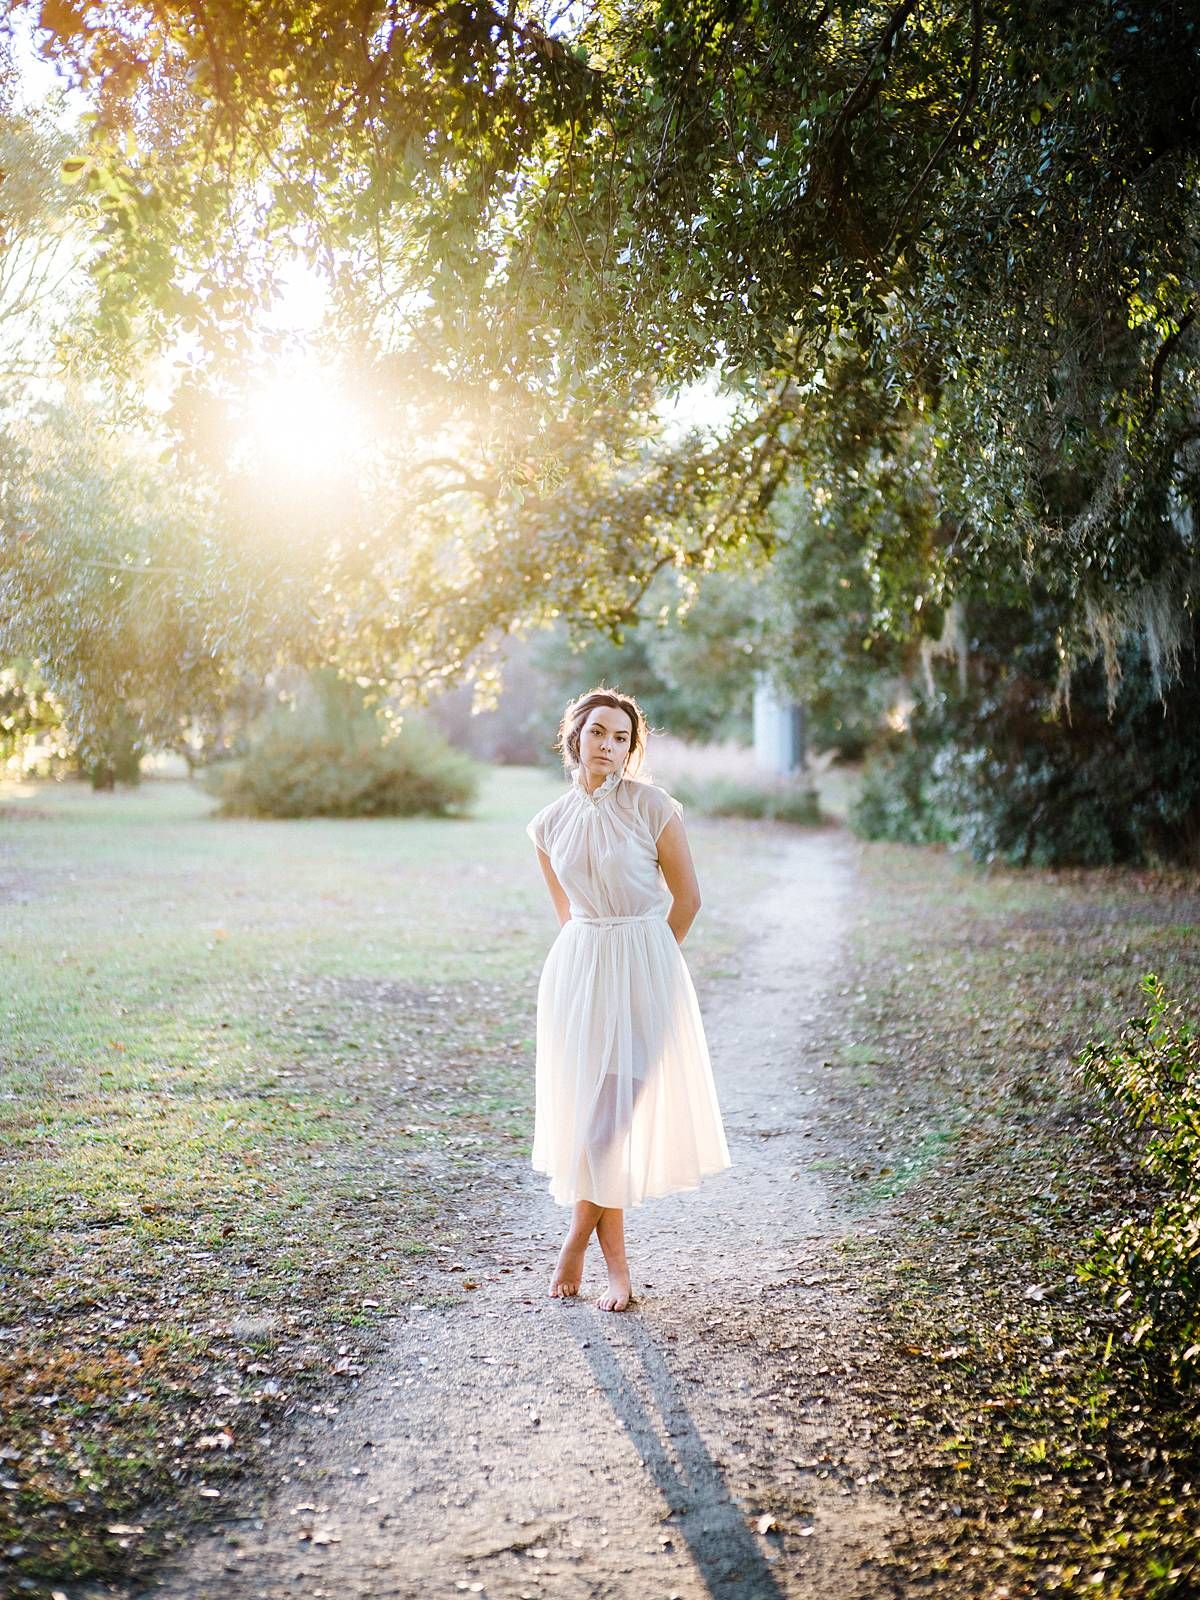 1911 paulina hampton park charleston fall portraits sony leica 00006_web